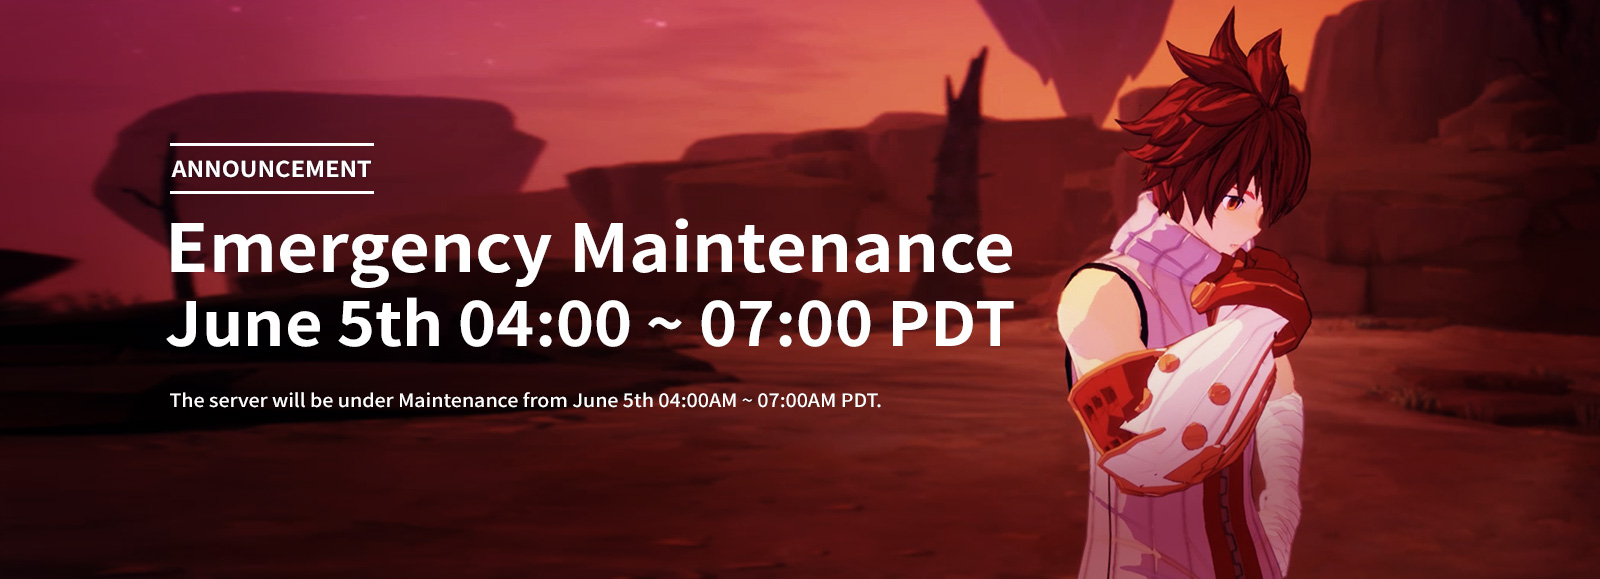 June 5th Emergency Maintenance Announcement